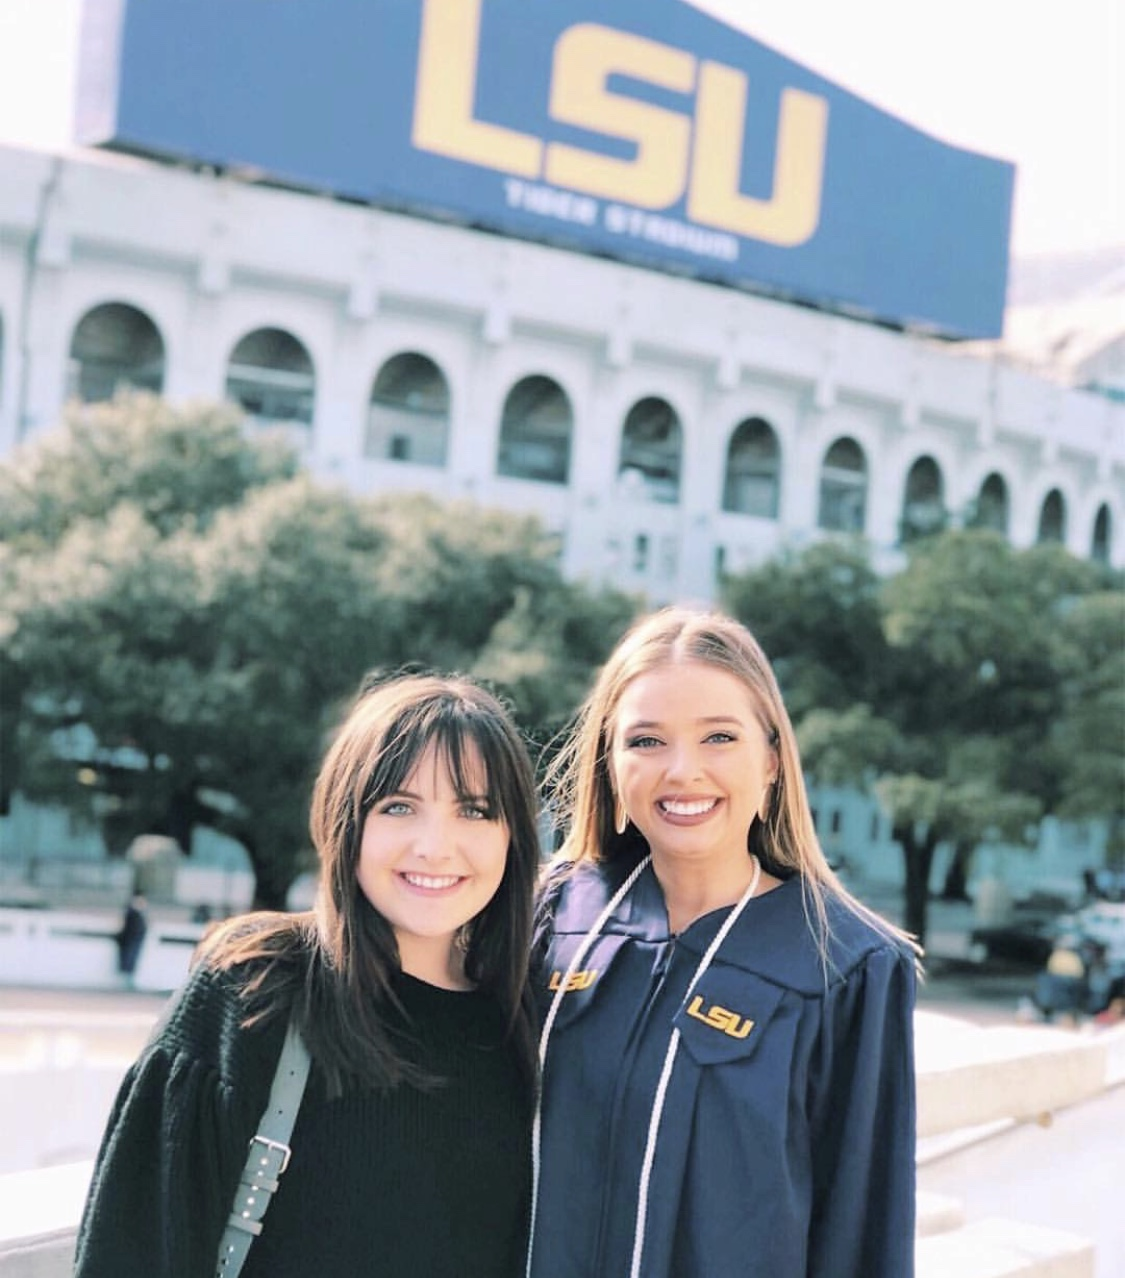 [Photo Description: Callie (right) and Emily (left) smile in front of LSU tiger stadium.]